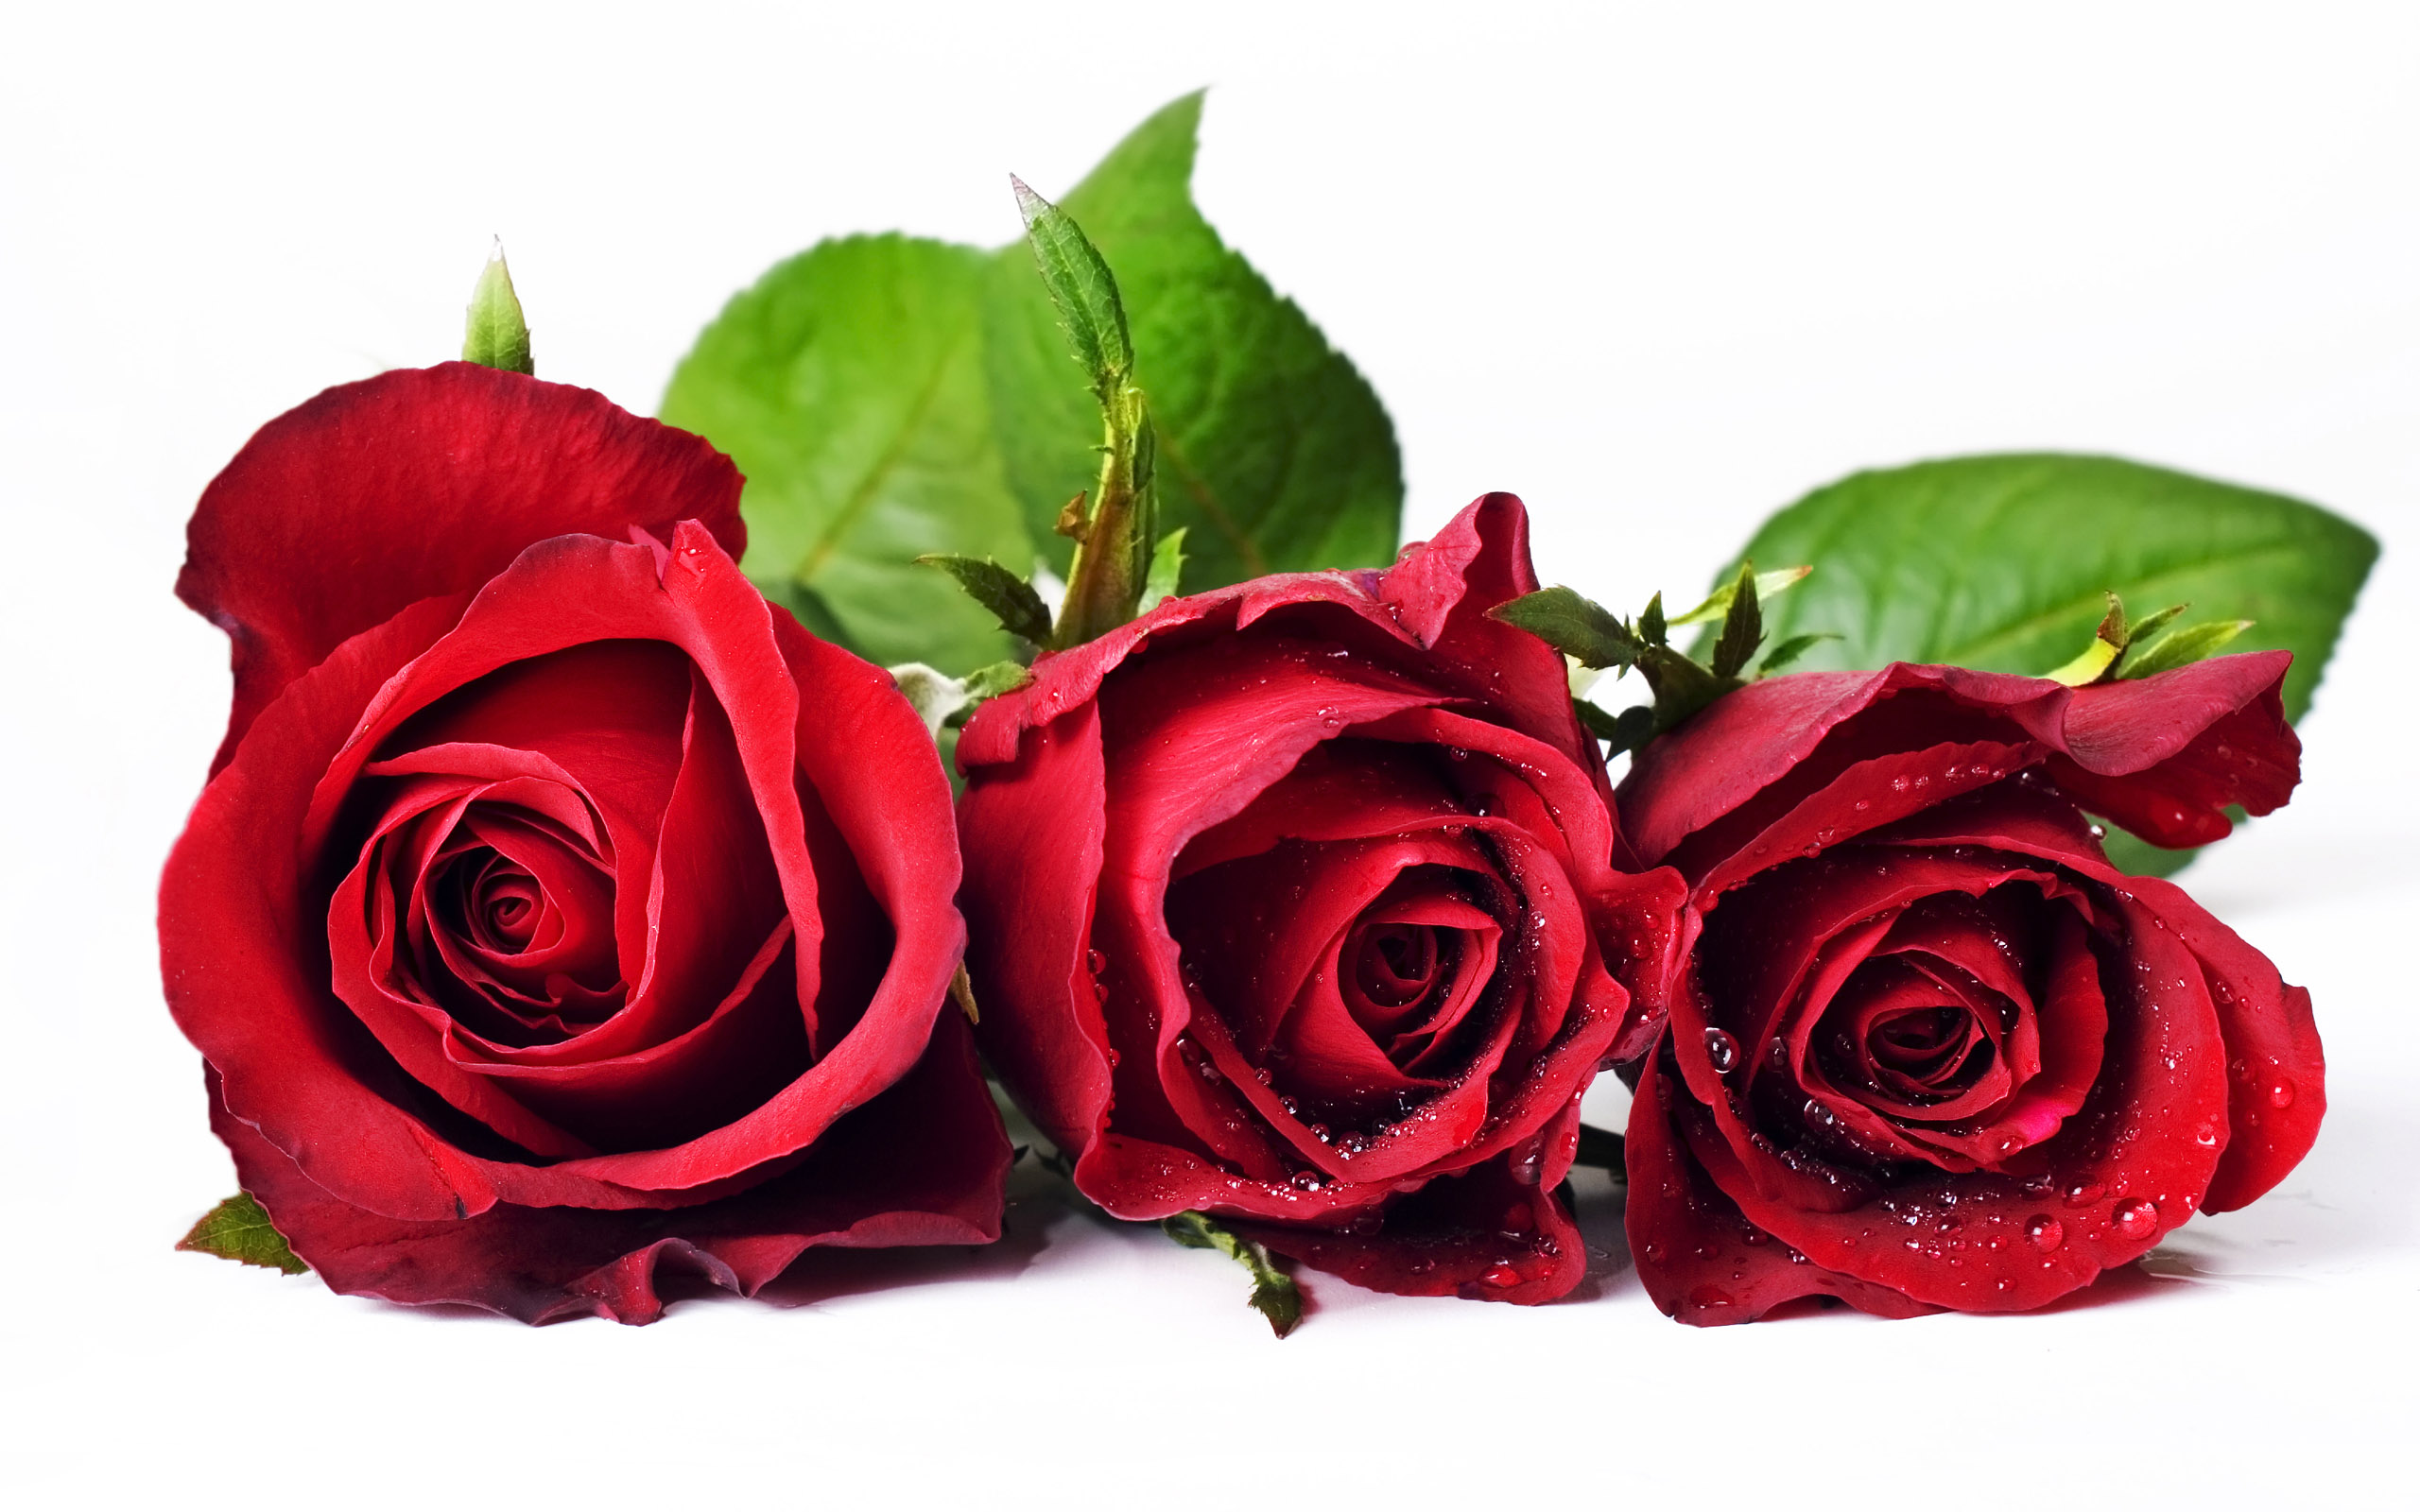 Beautiful roses hd wallpapers flowers wallappers free - Red rose flower hd images ...